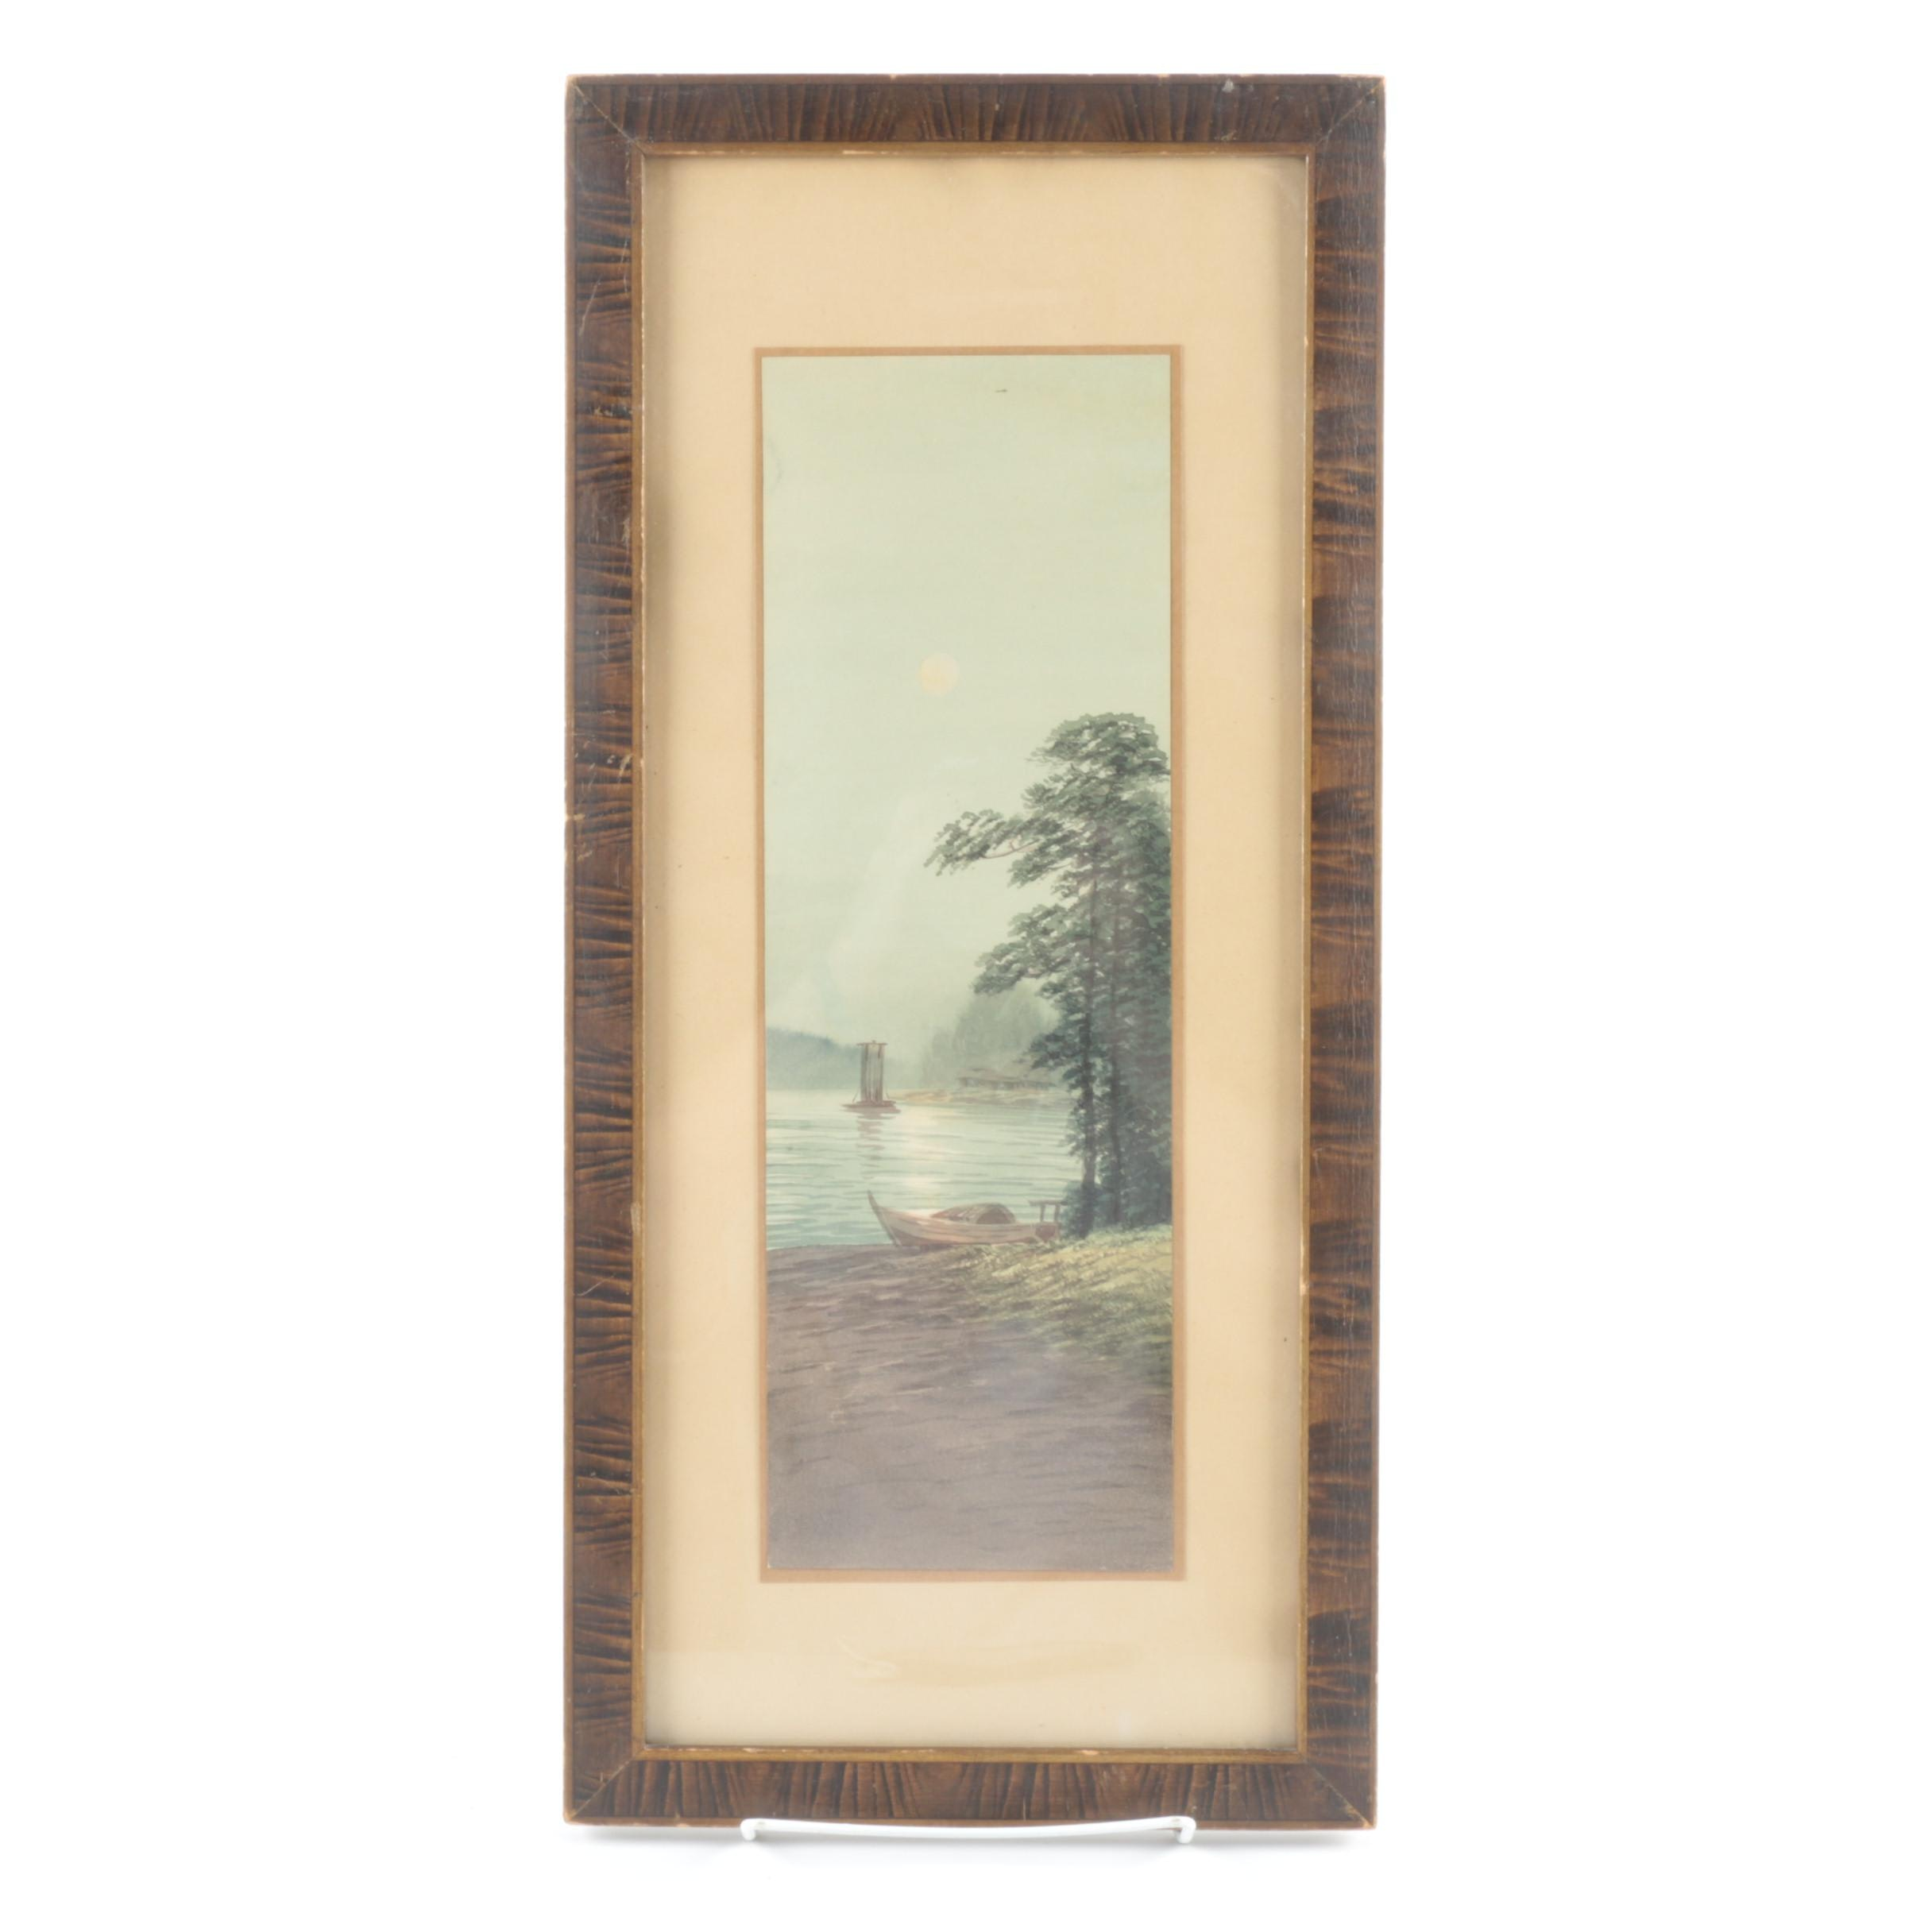 Framed Watercolor of Boats in the Water